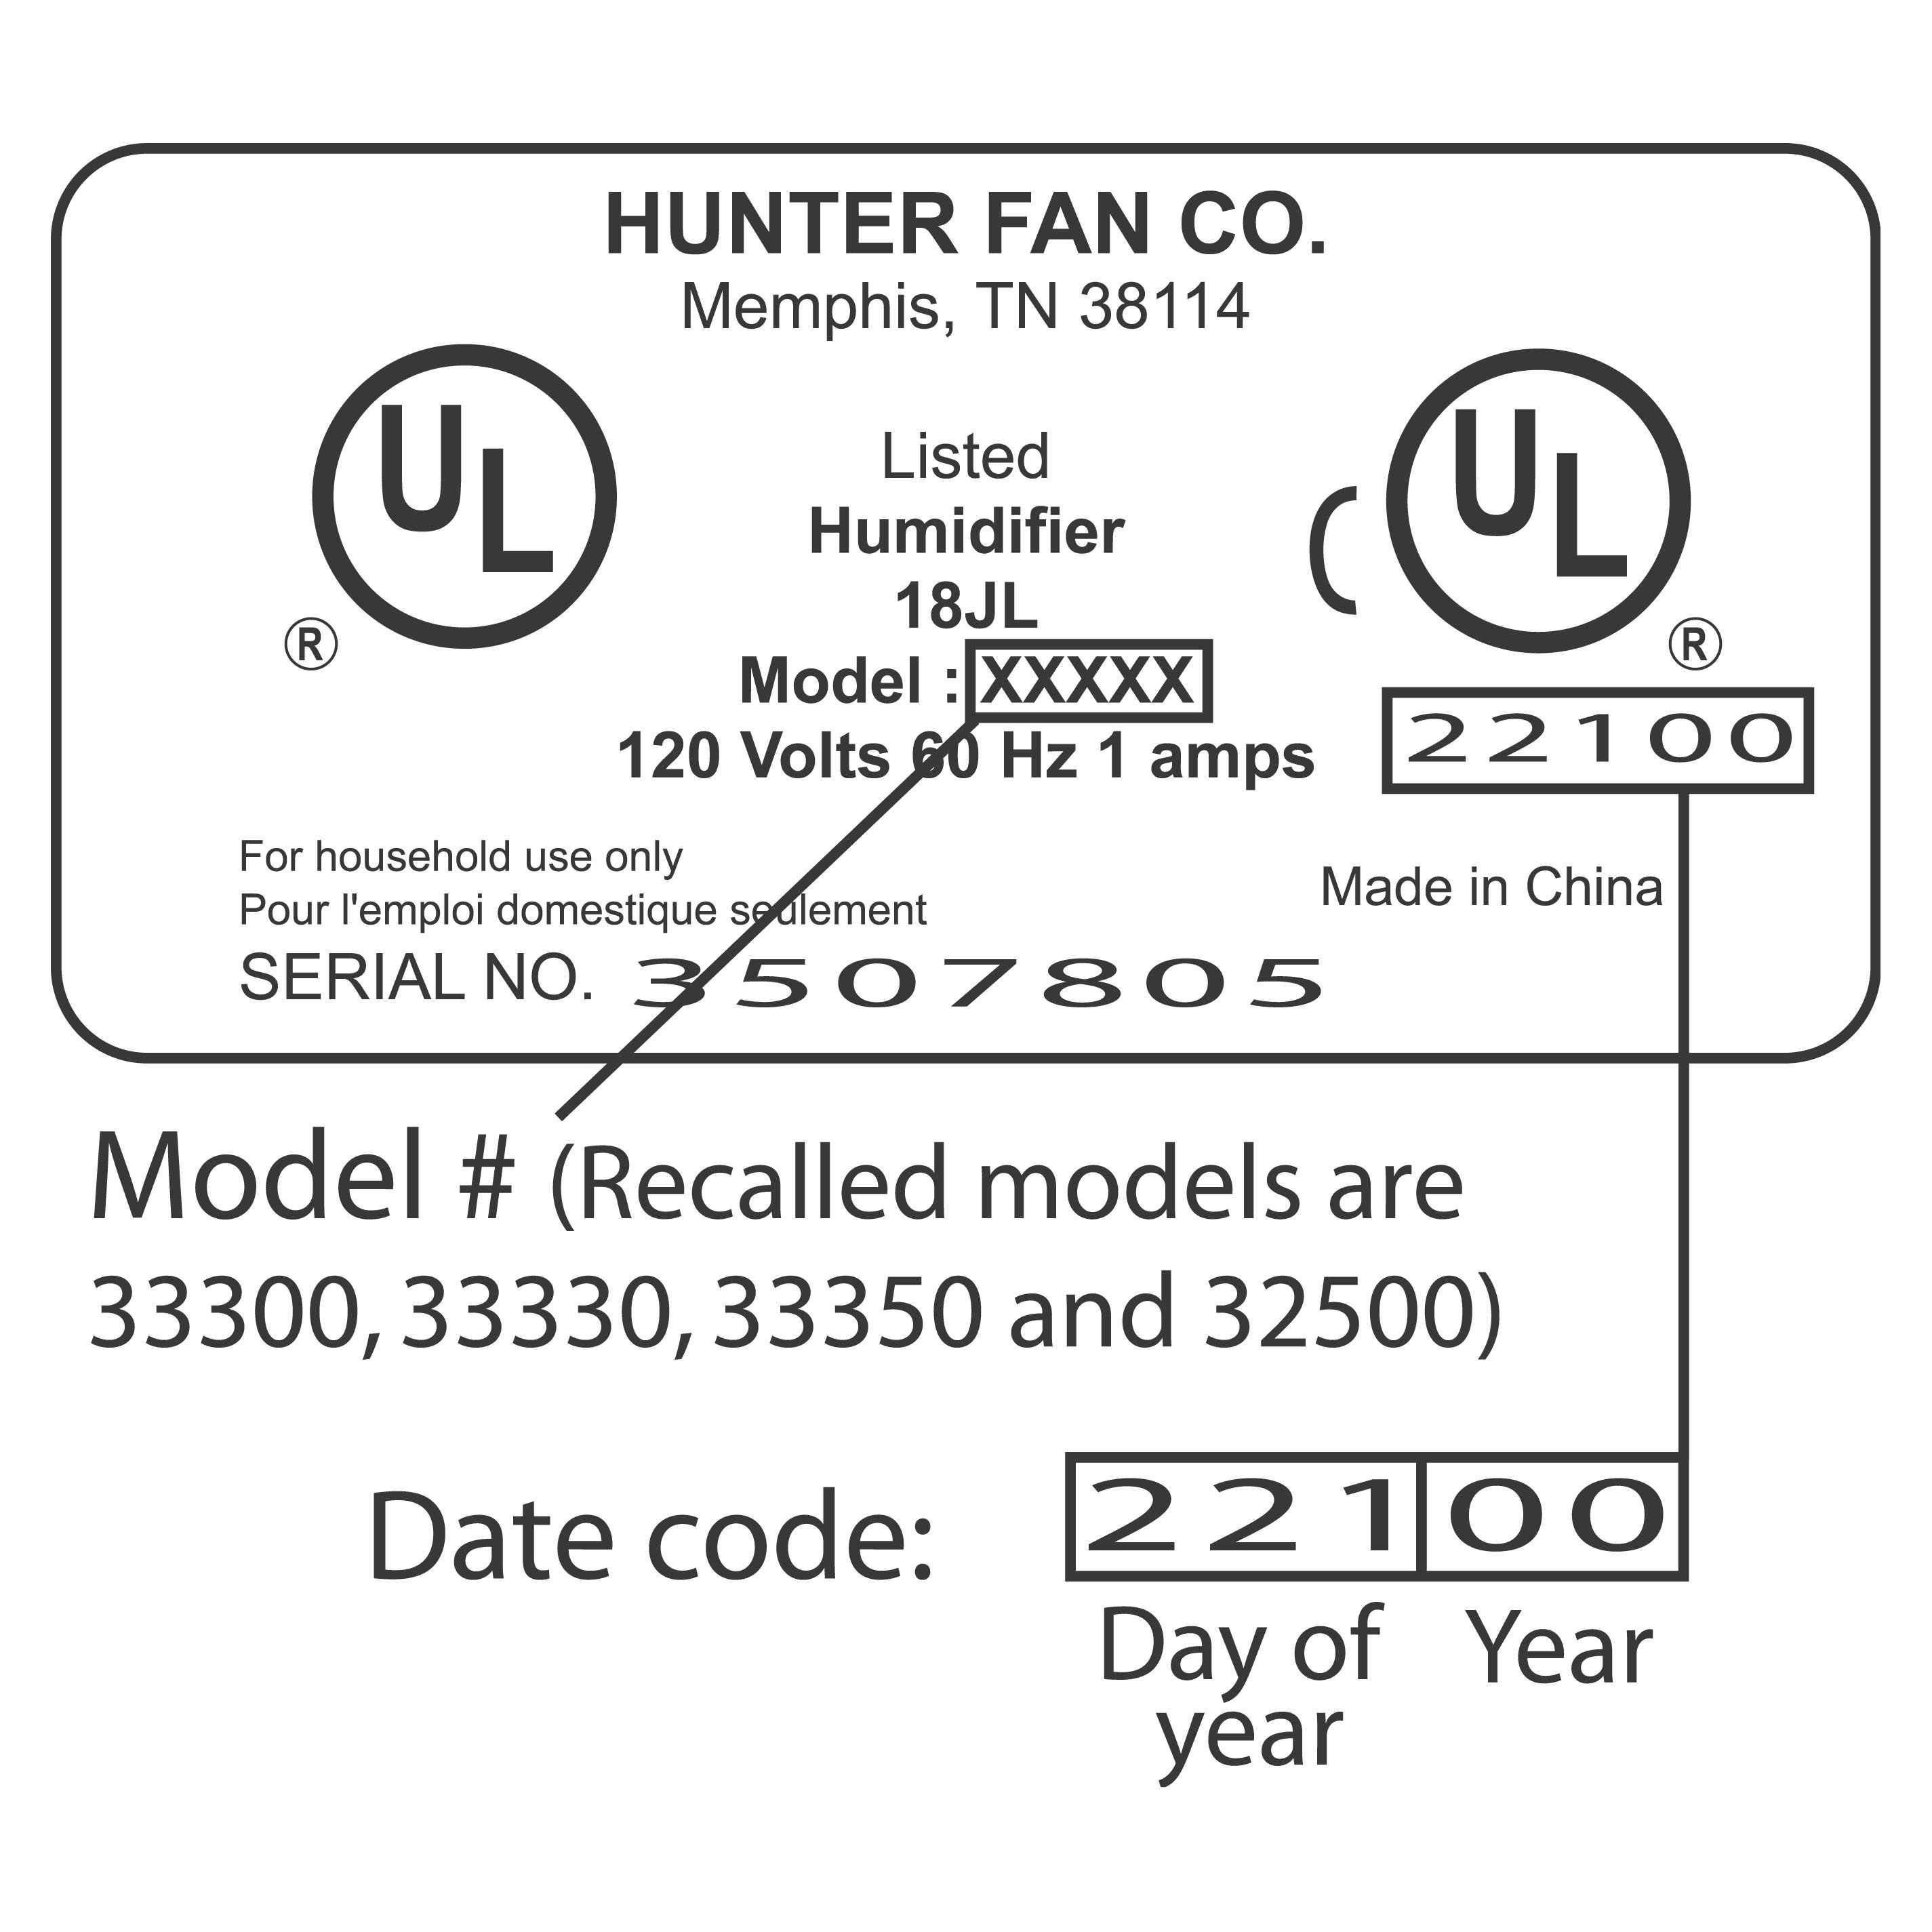 Picture of Recalled Humidifier Label